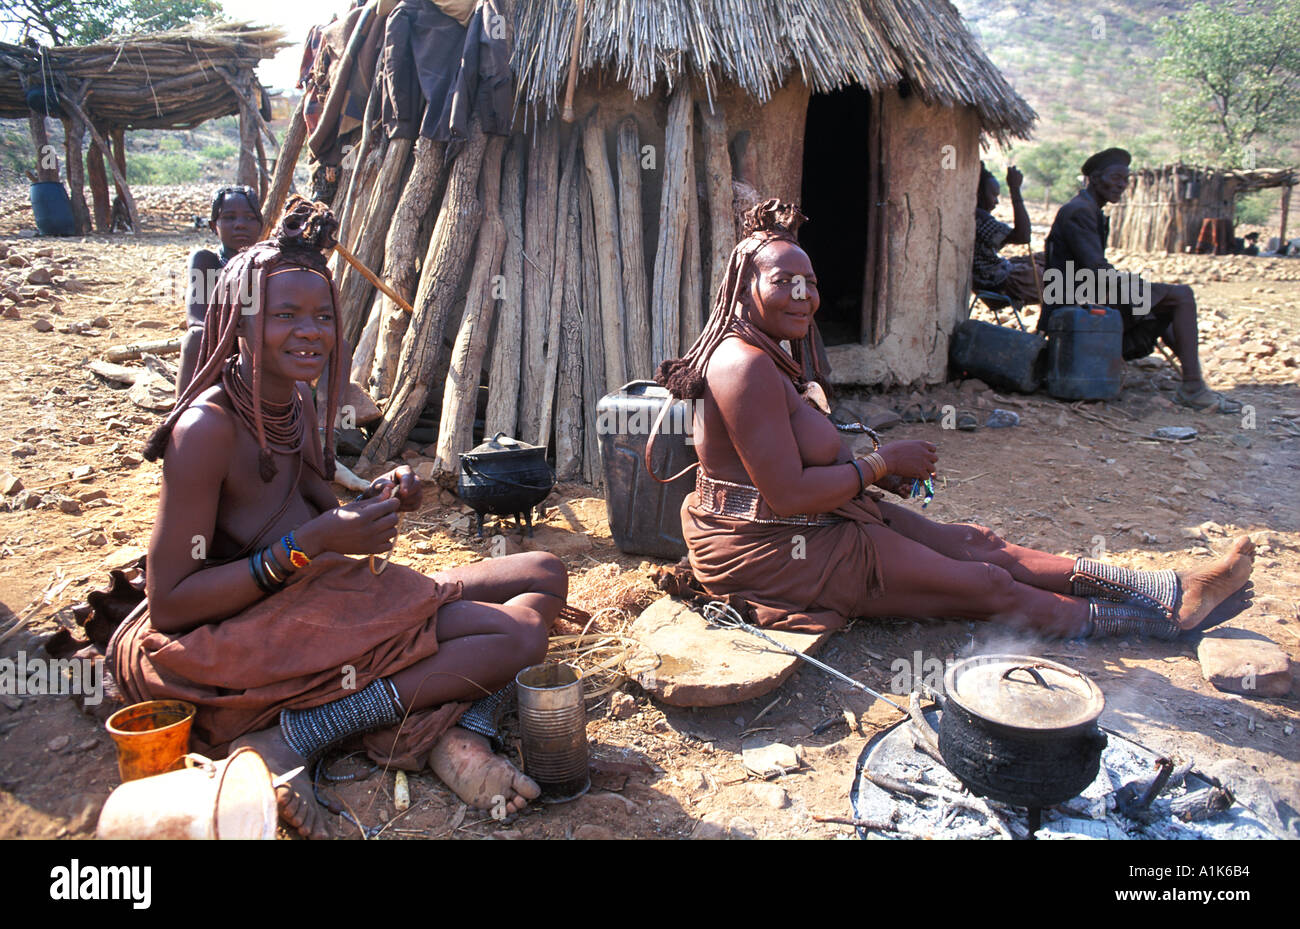 Himba women with distinctive hair decoration and adornments in their village Kaokoveld tribal areas NW of Opuwo Namibia - Stock Image